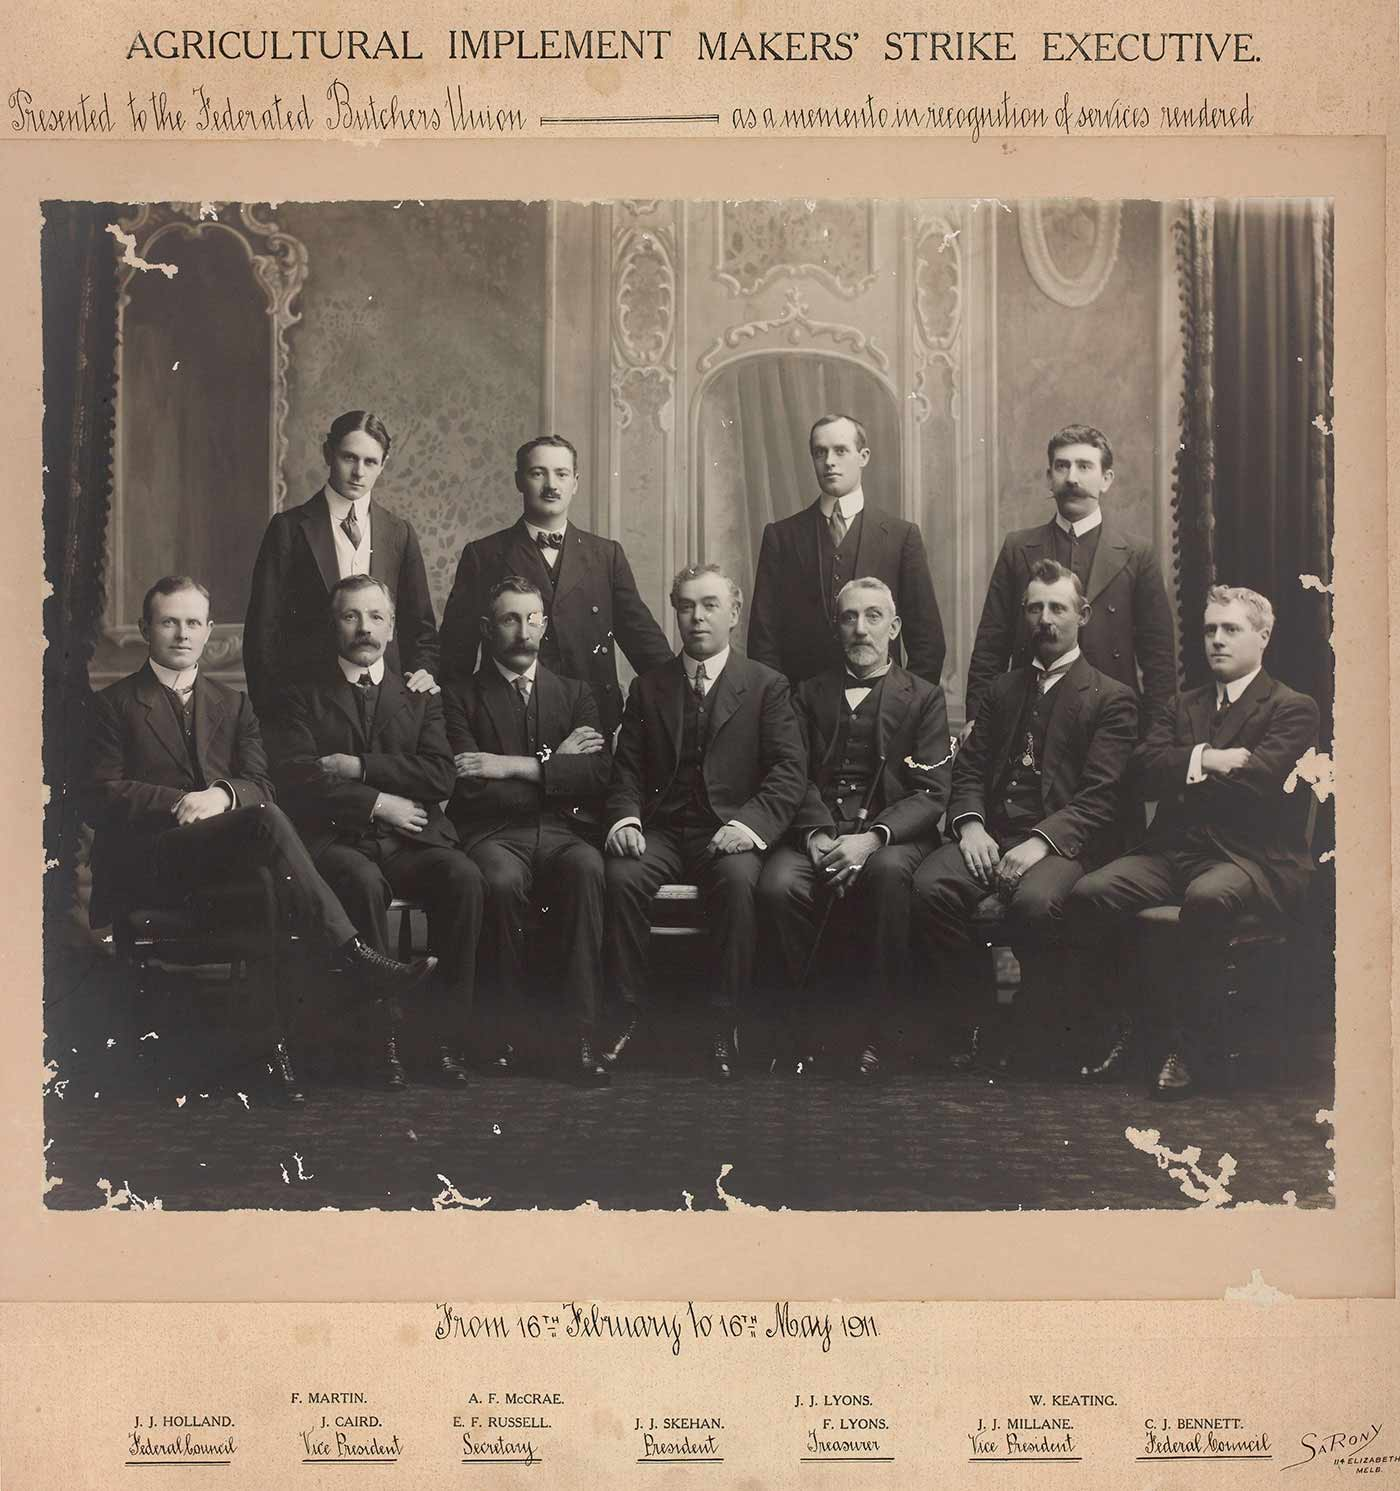 Group portrait of the Agricultural Implement Makers' Strike Executive 1911. - click to view larger image